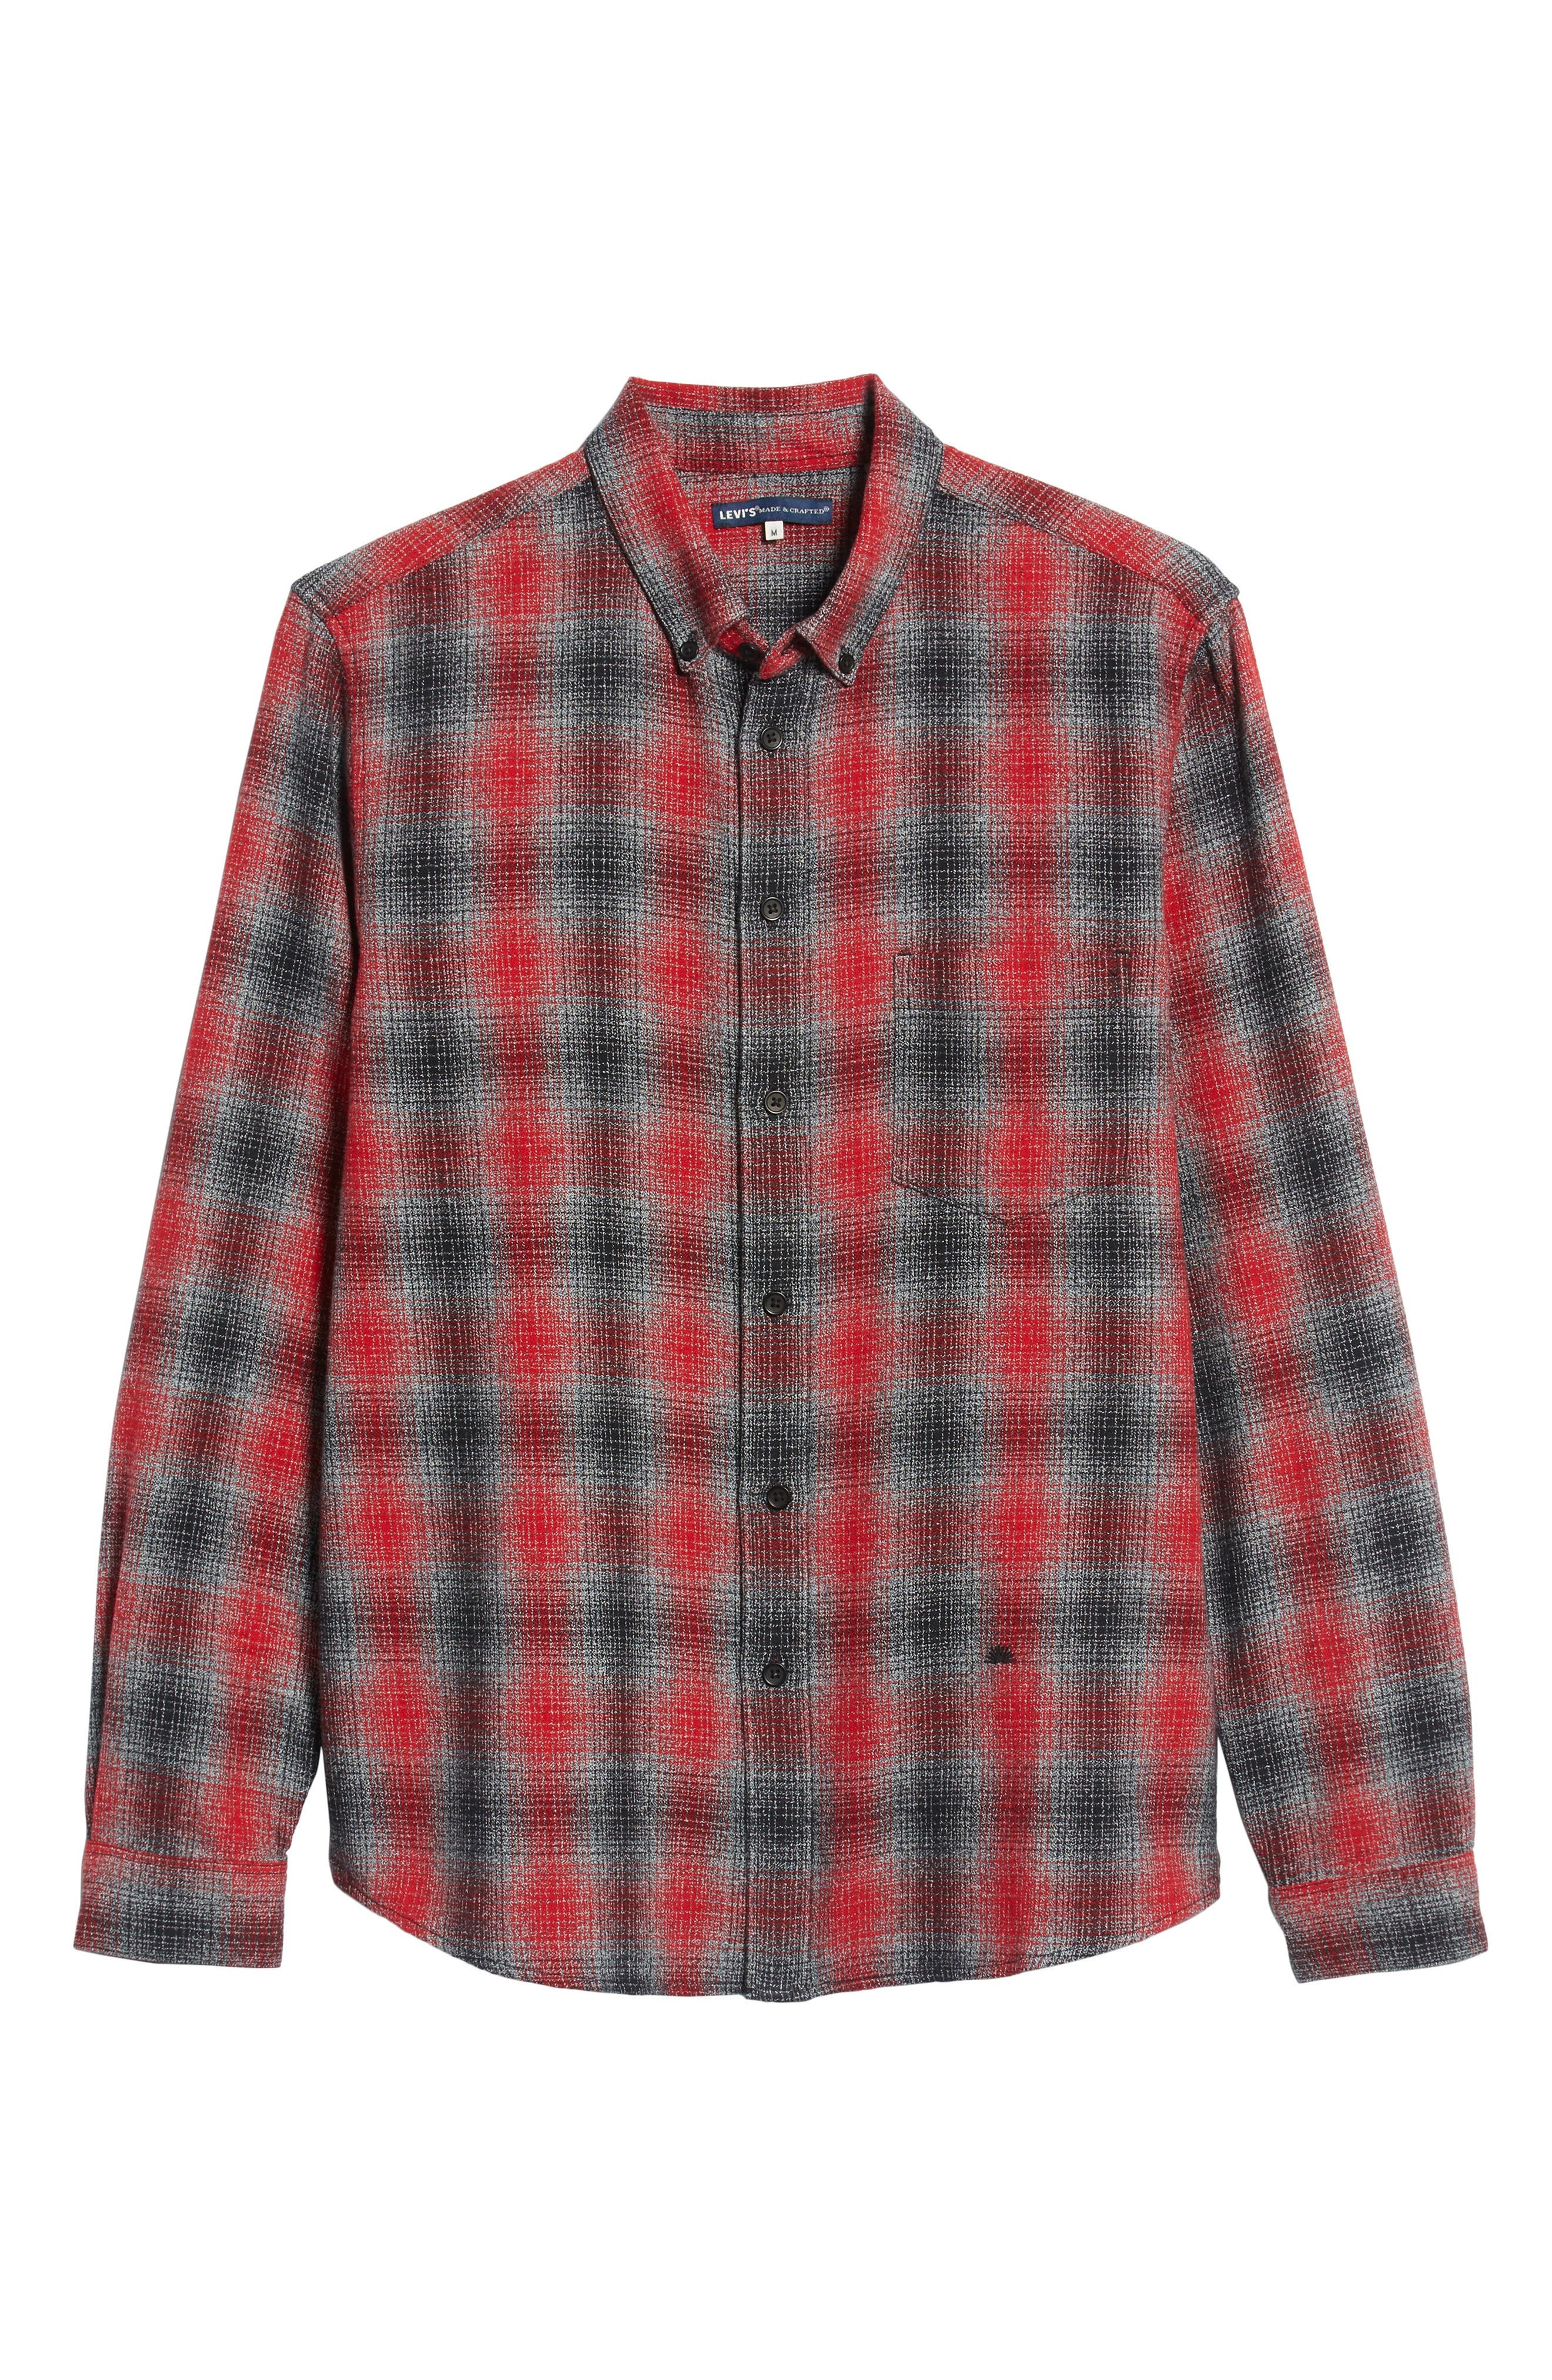 LEVI'S<SUP>®</SUP> MADE & CRAFTED<SUP>™</SUP>,                             Standard Plaid Sport Shirt,                             Alternate thumbnail 5, color,                             800